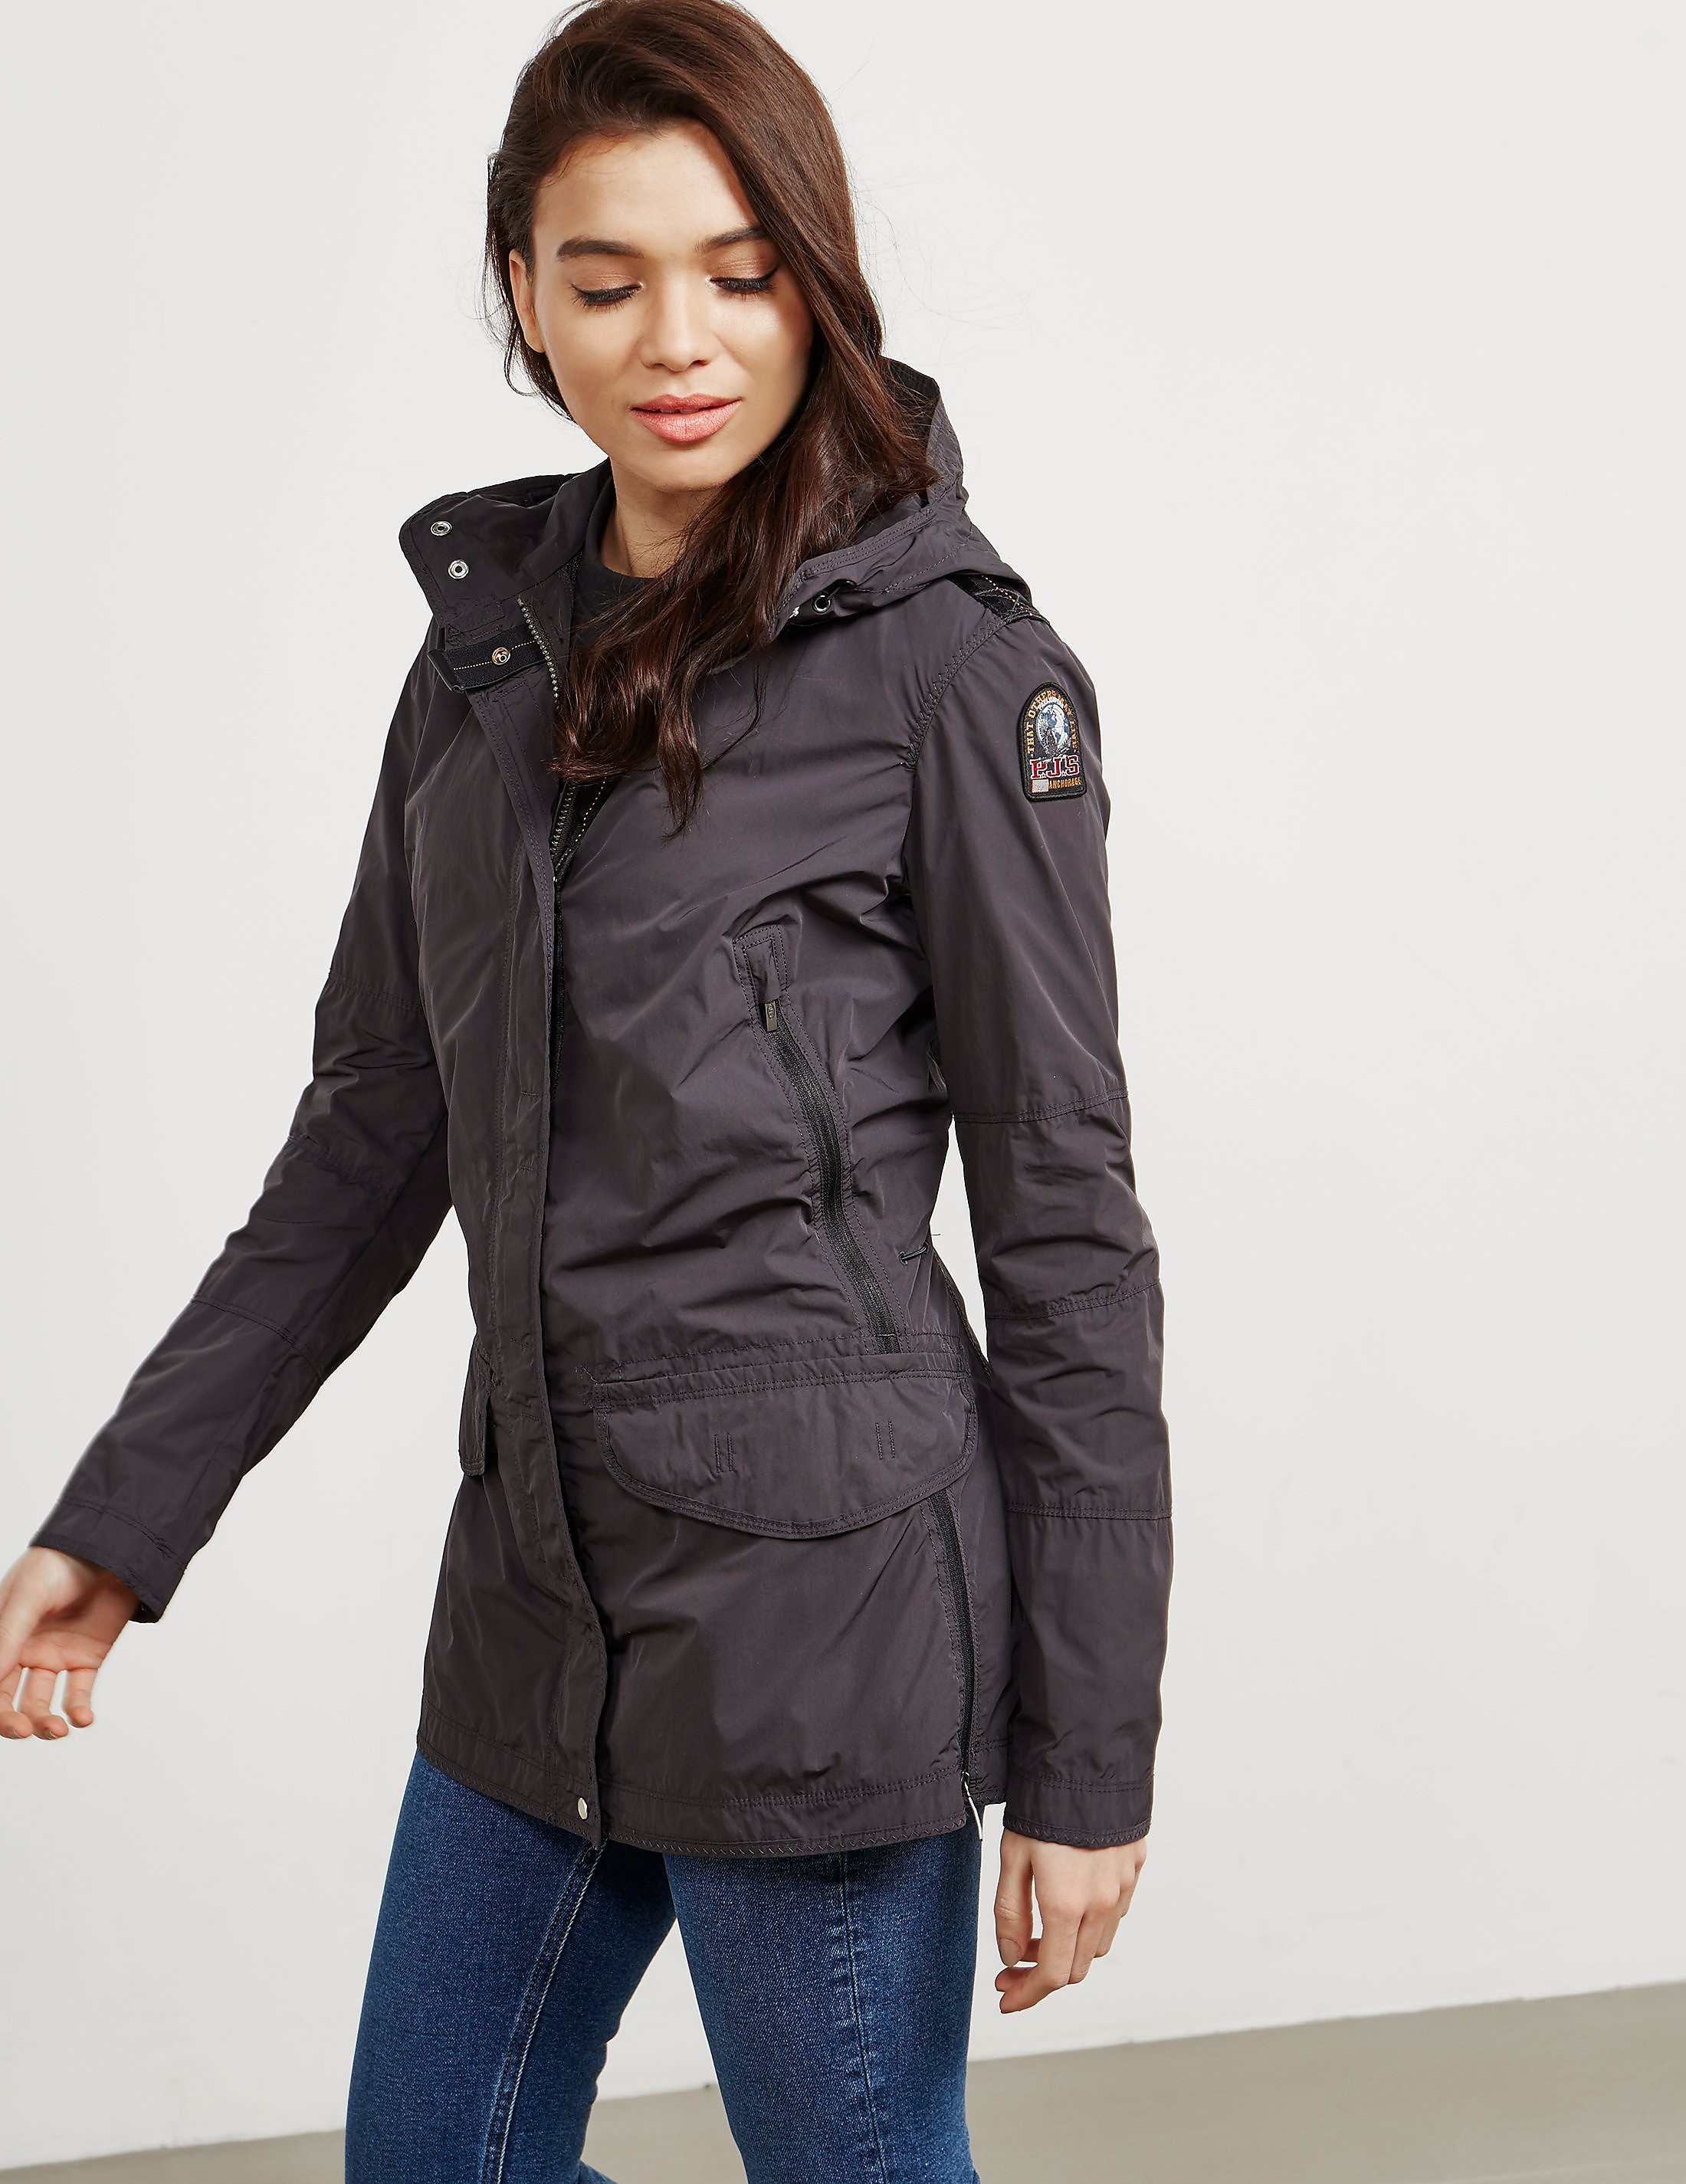 Parajumpers Mary Todd Jacket - Online Exclusive